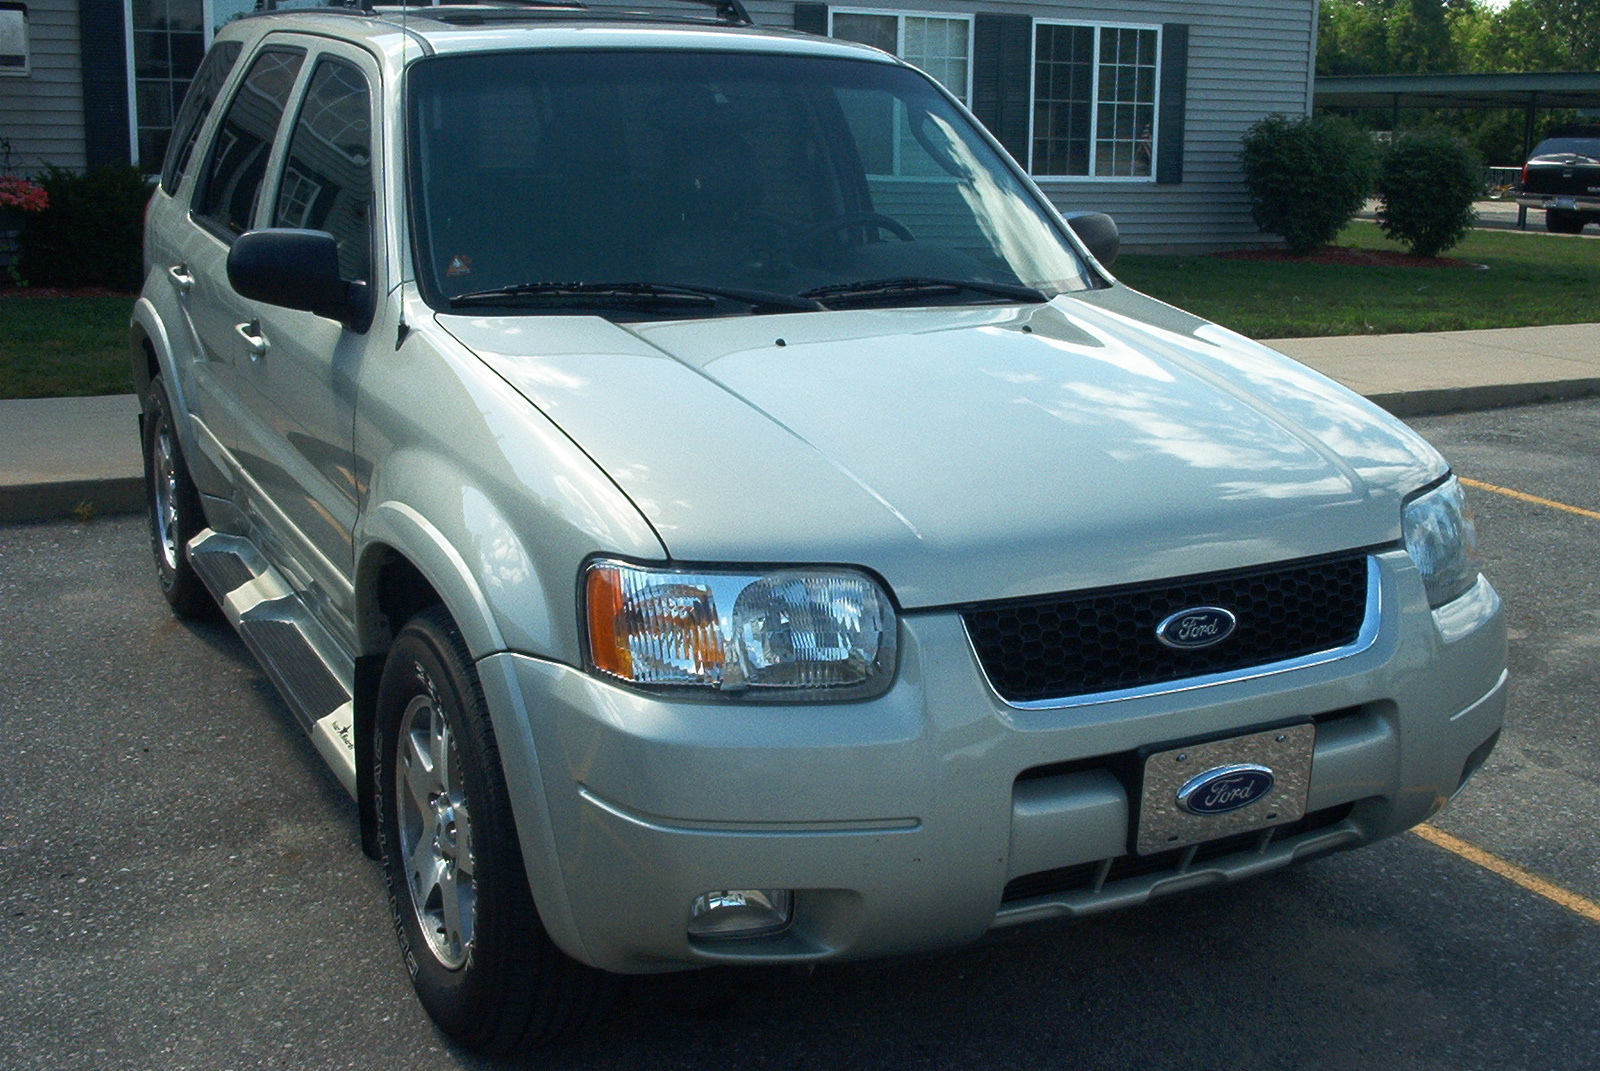 2004 Ford Escape Limited 4WD picture